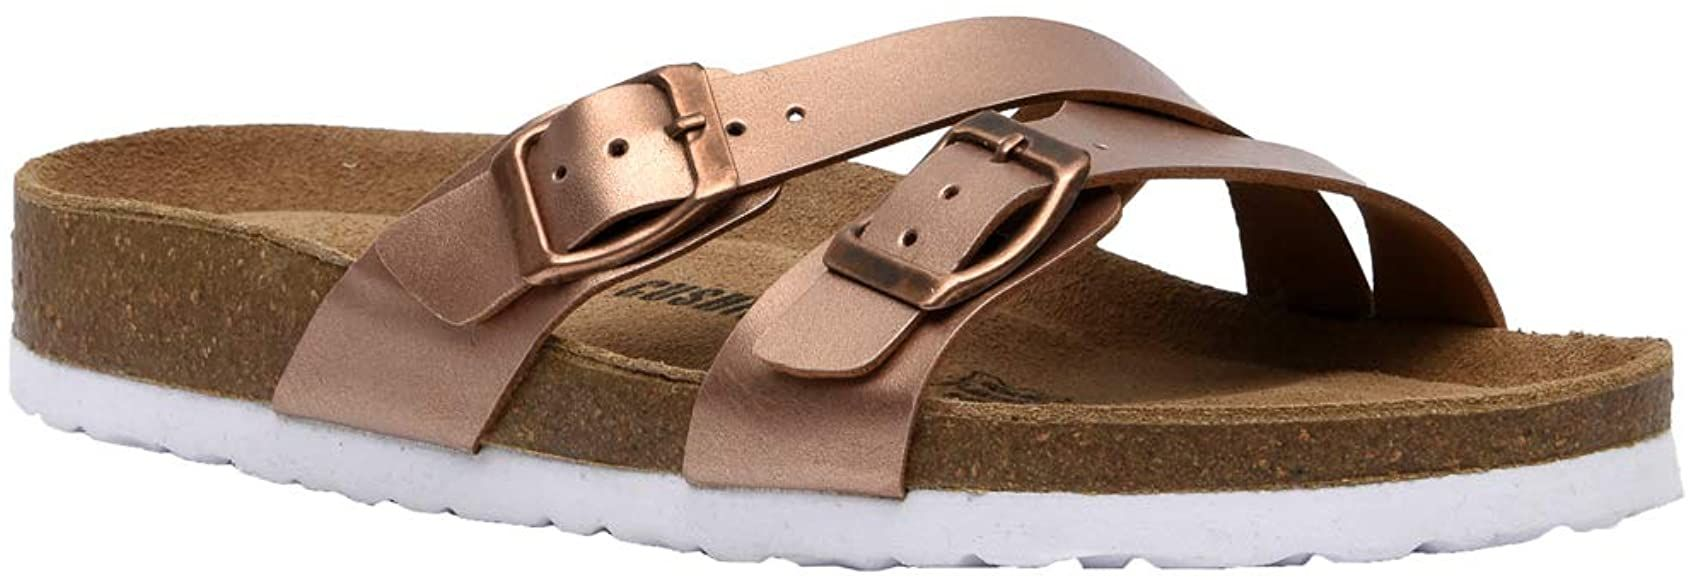 Amazon Com Cushionaire Women S Liza Cork Footbed Sandal With Comfort Rose Gold 8 5 Slides In 2020 Footbed Sandals Cork Footbed Sandals Sandals